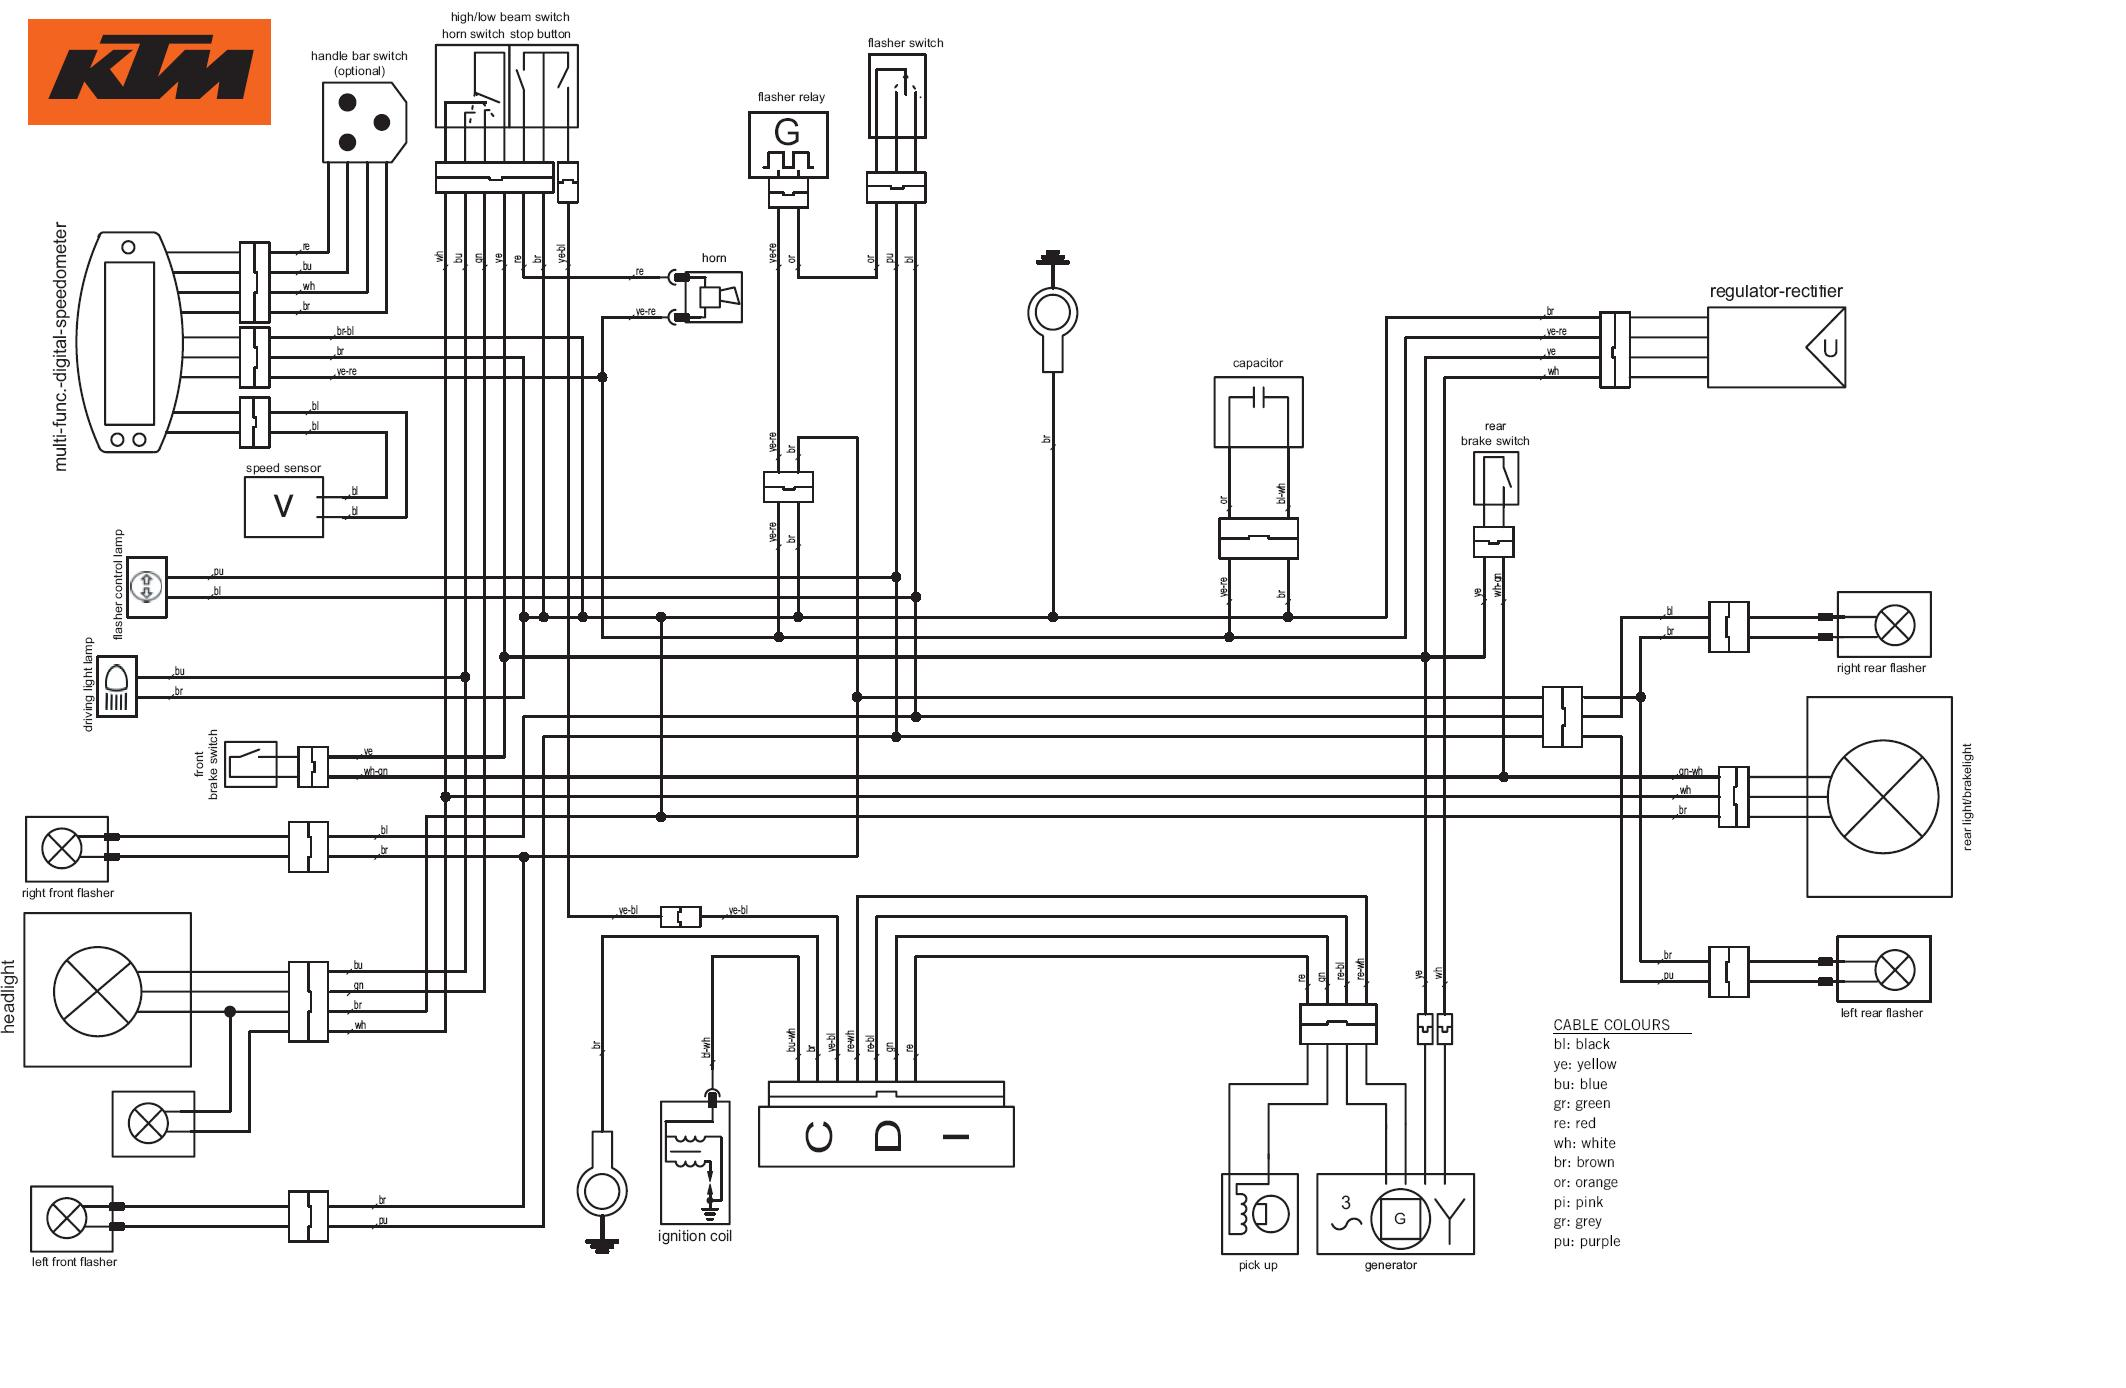 Ha 6348  Ktm Freeride 250r Wiring Diagram Schematic Wiring